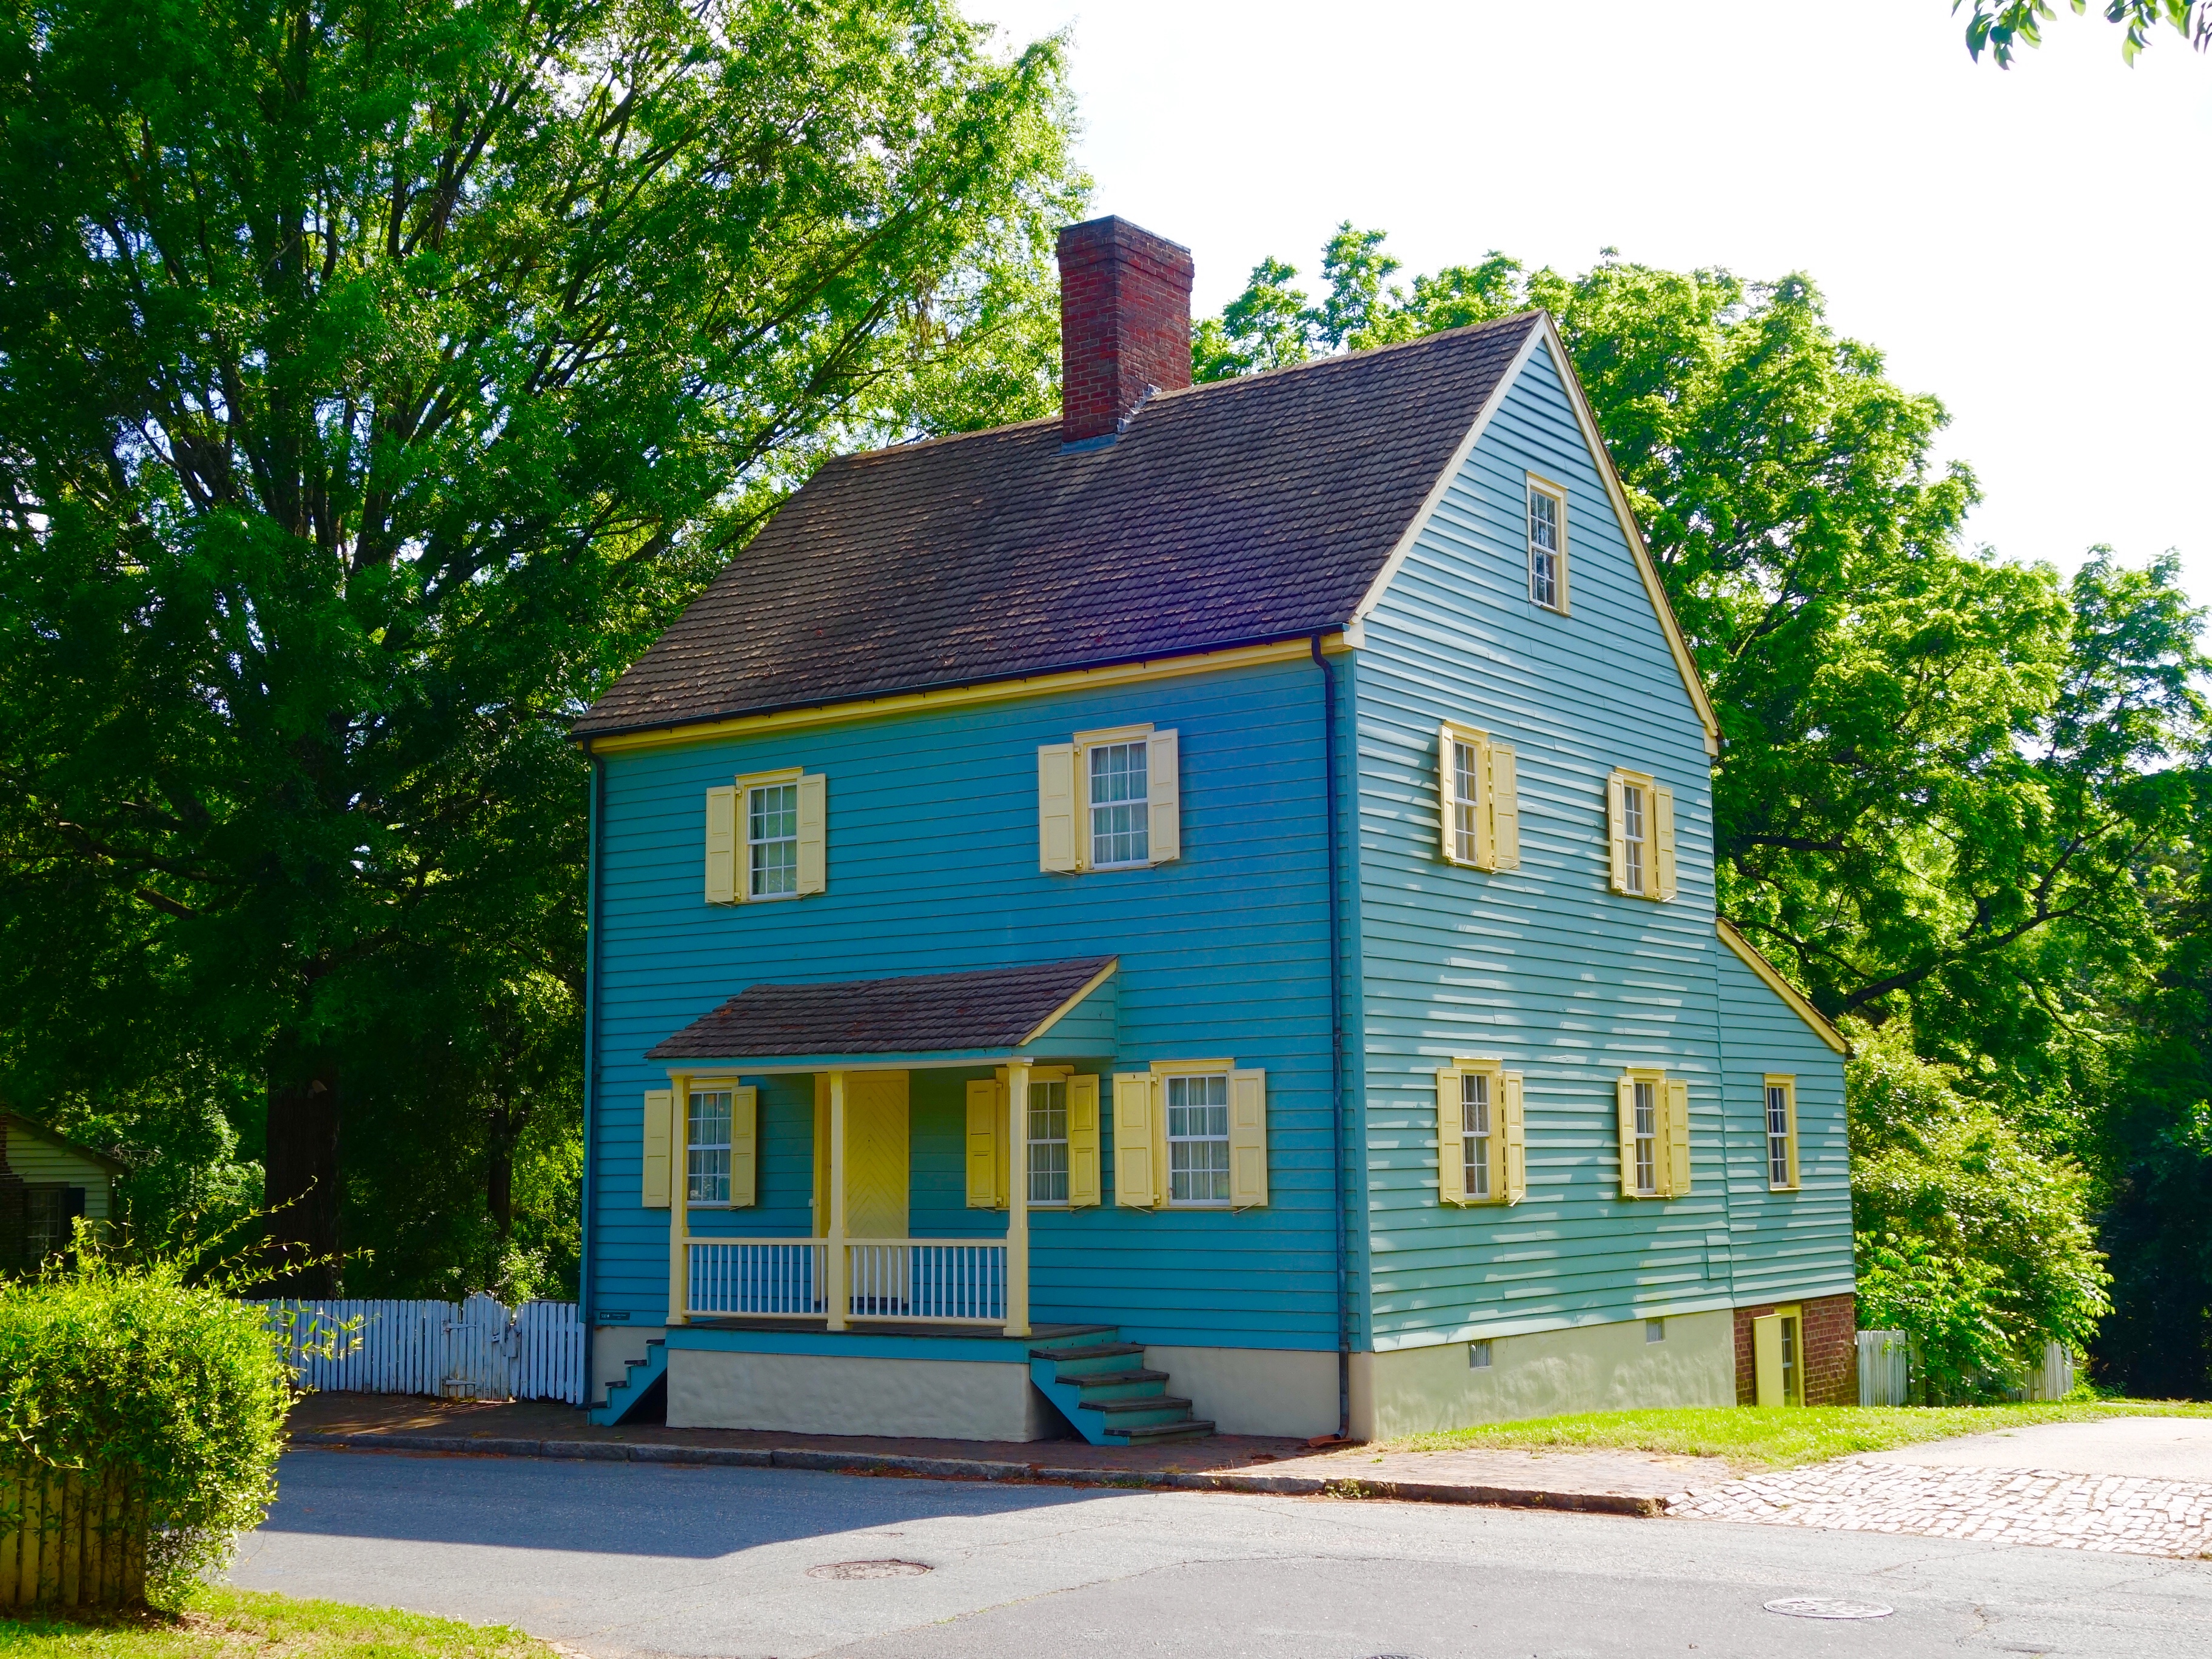 Beautiful example of 18th century home of the Moravian community in Salem, NC.